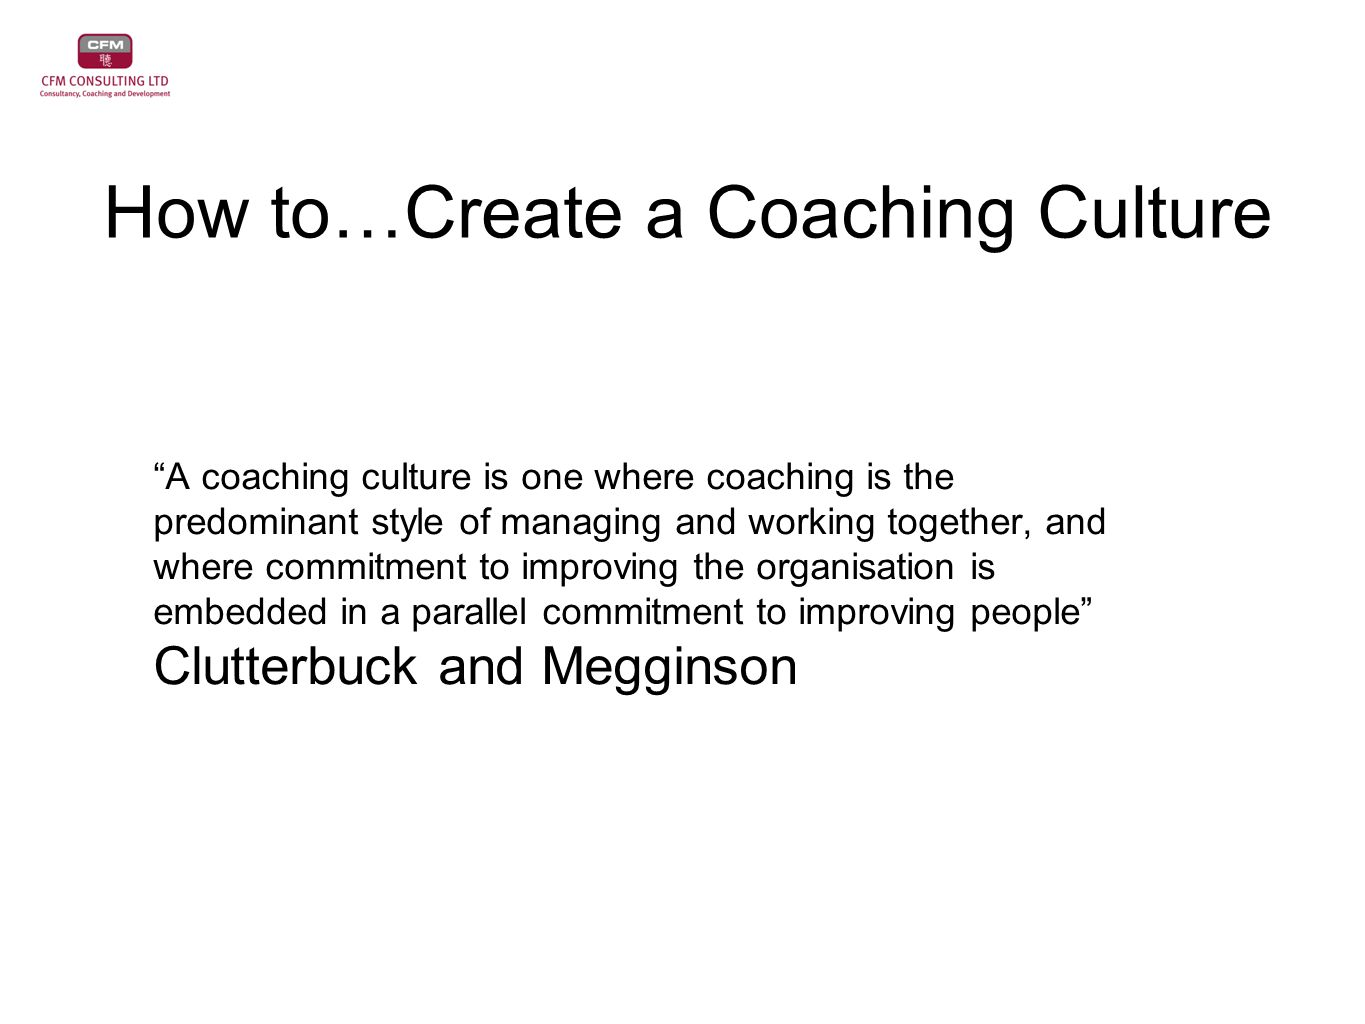 How to…Create a Coaching Culture A coaching culture is one where coaching is the predominant style of managing and working together, and where commitment to improving the organisation is embedded in a parallel commitment to improving people Clutterbuck and Megginson